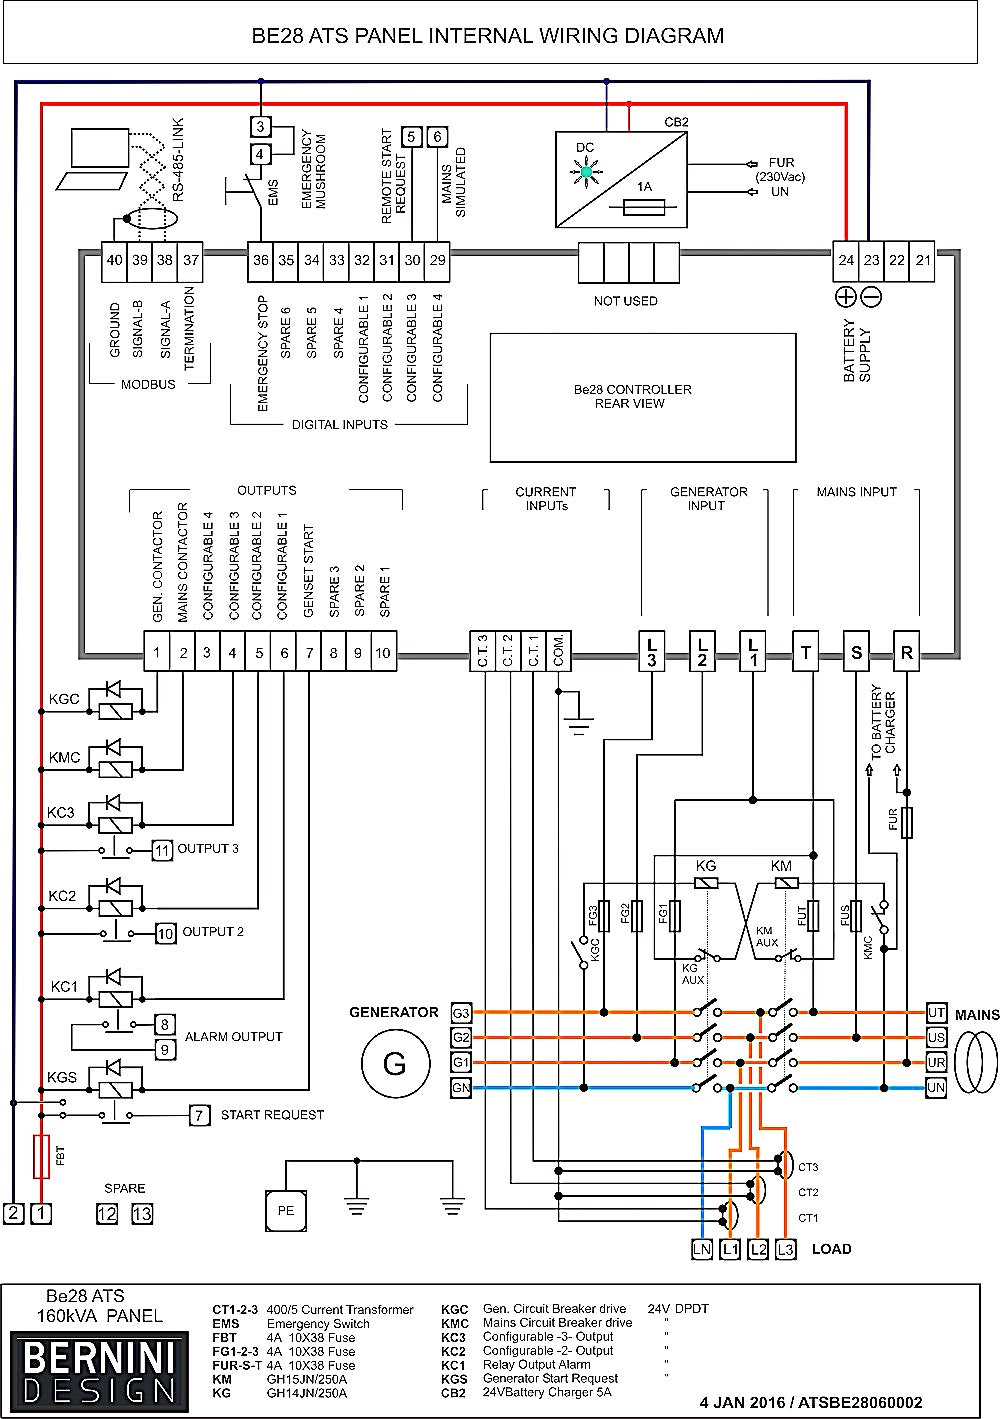 generac ats wiring diagram Collection-Generac Automatic Transfer Switch Wiring Diagram Simple Design Between Solargenerator And 15-f